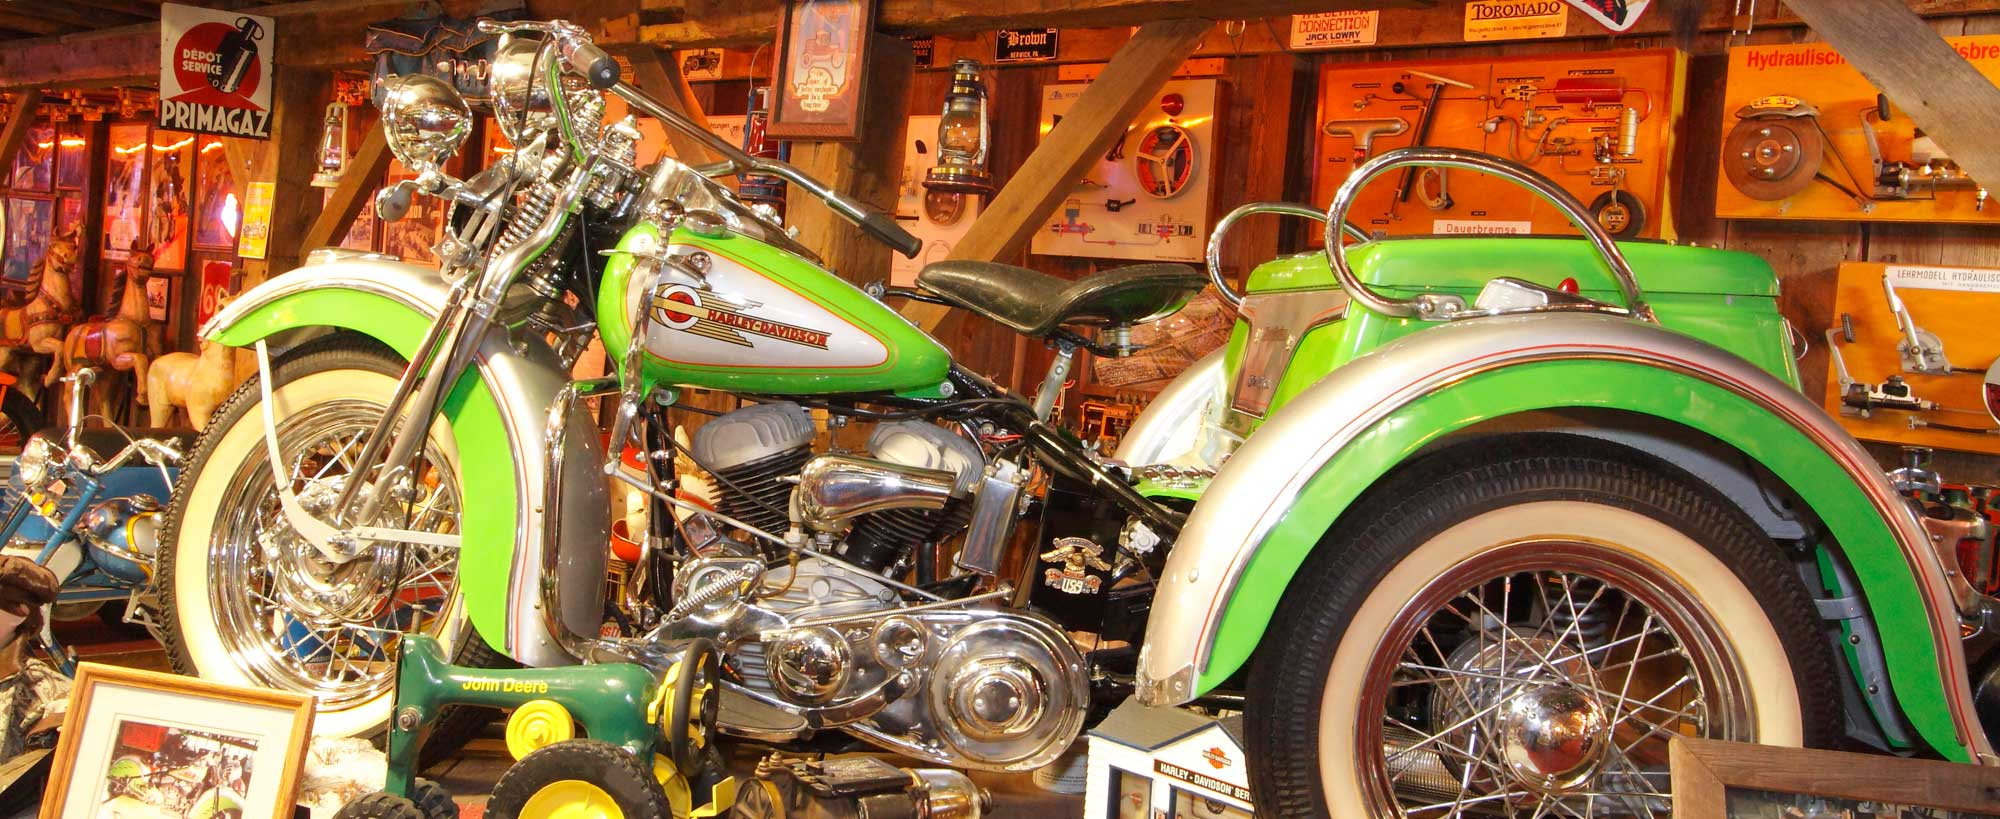 Vintage motorcycles galore inside Bill's Old Bike Barn